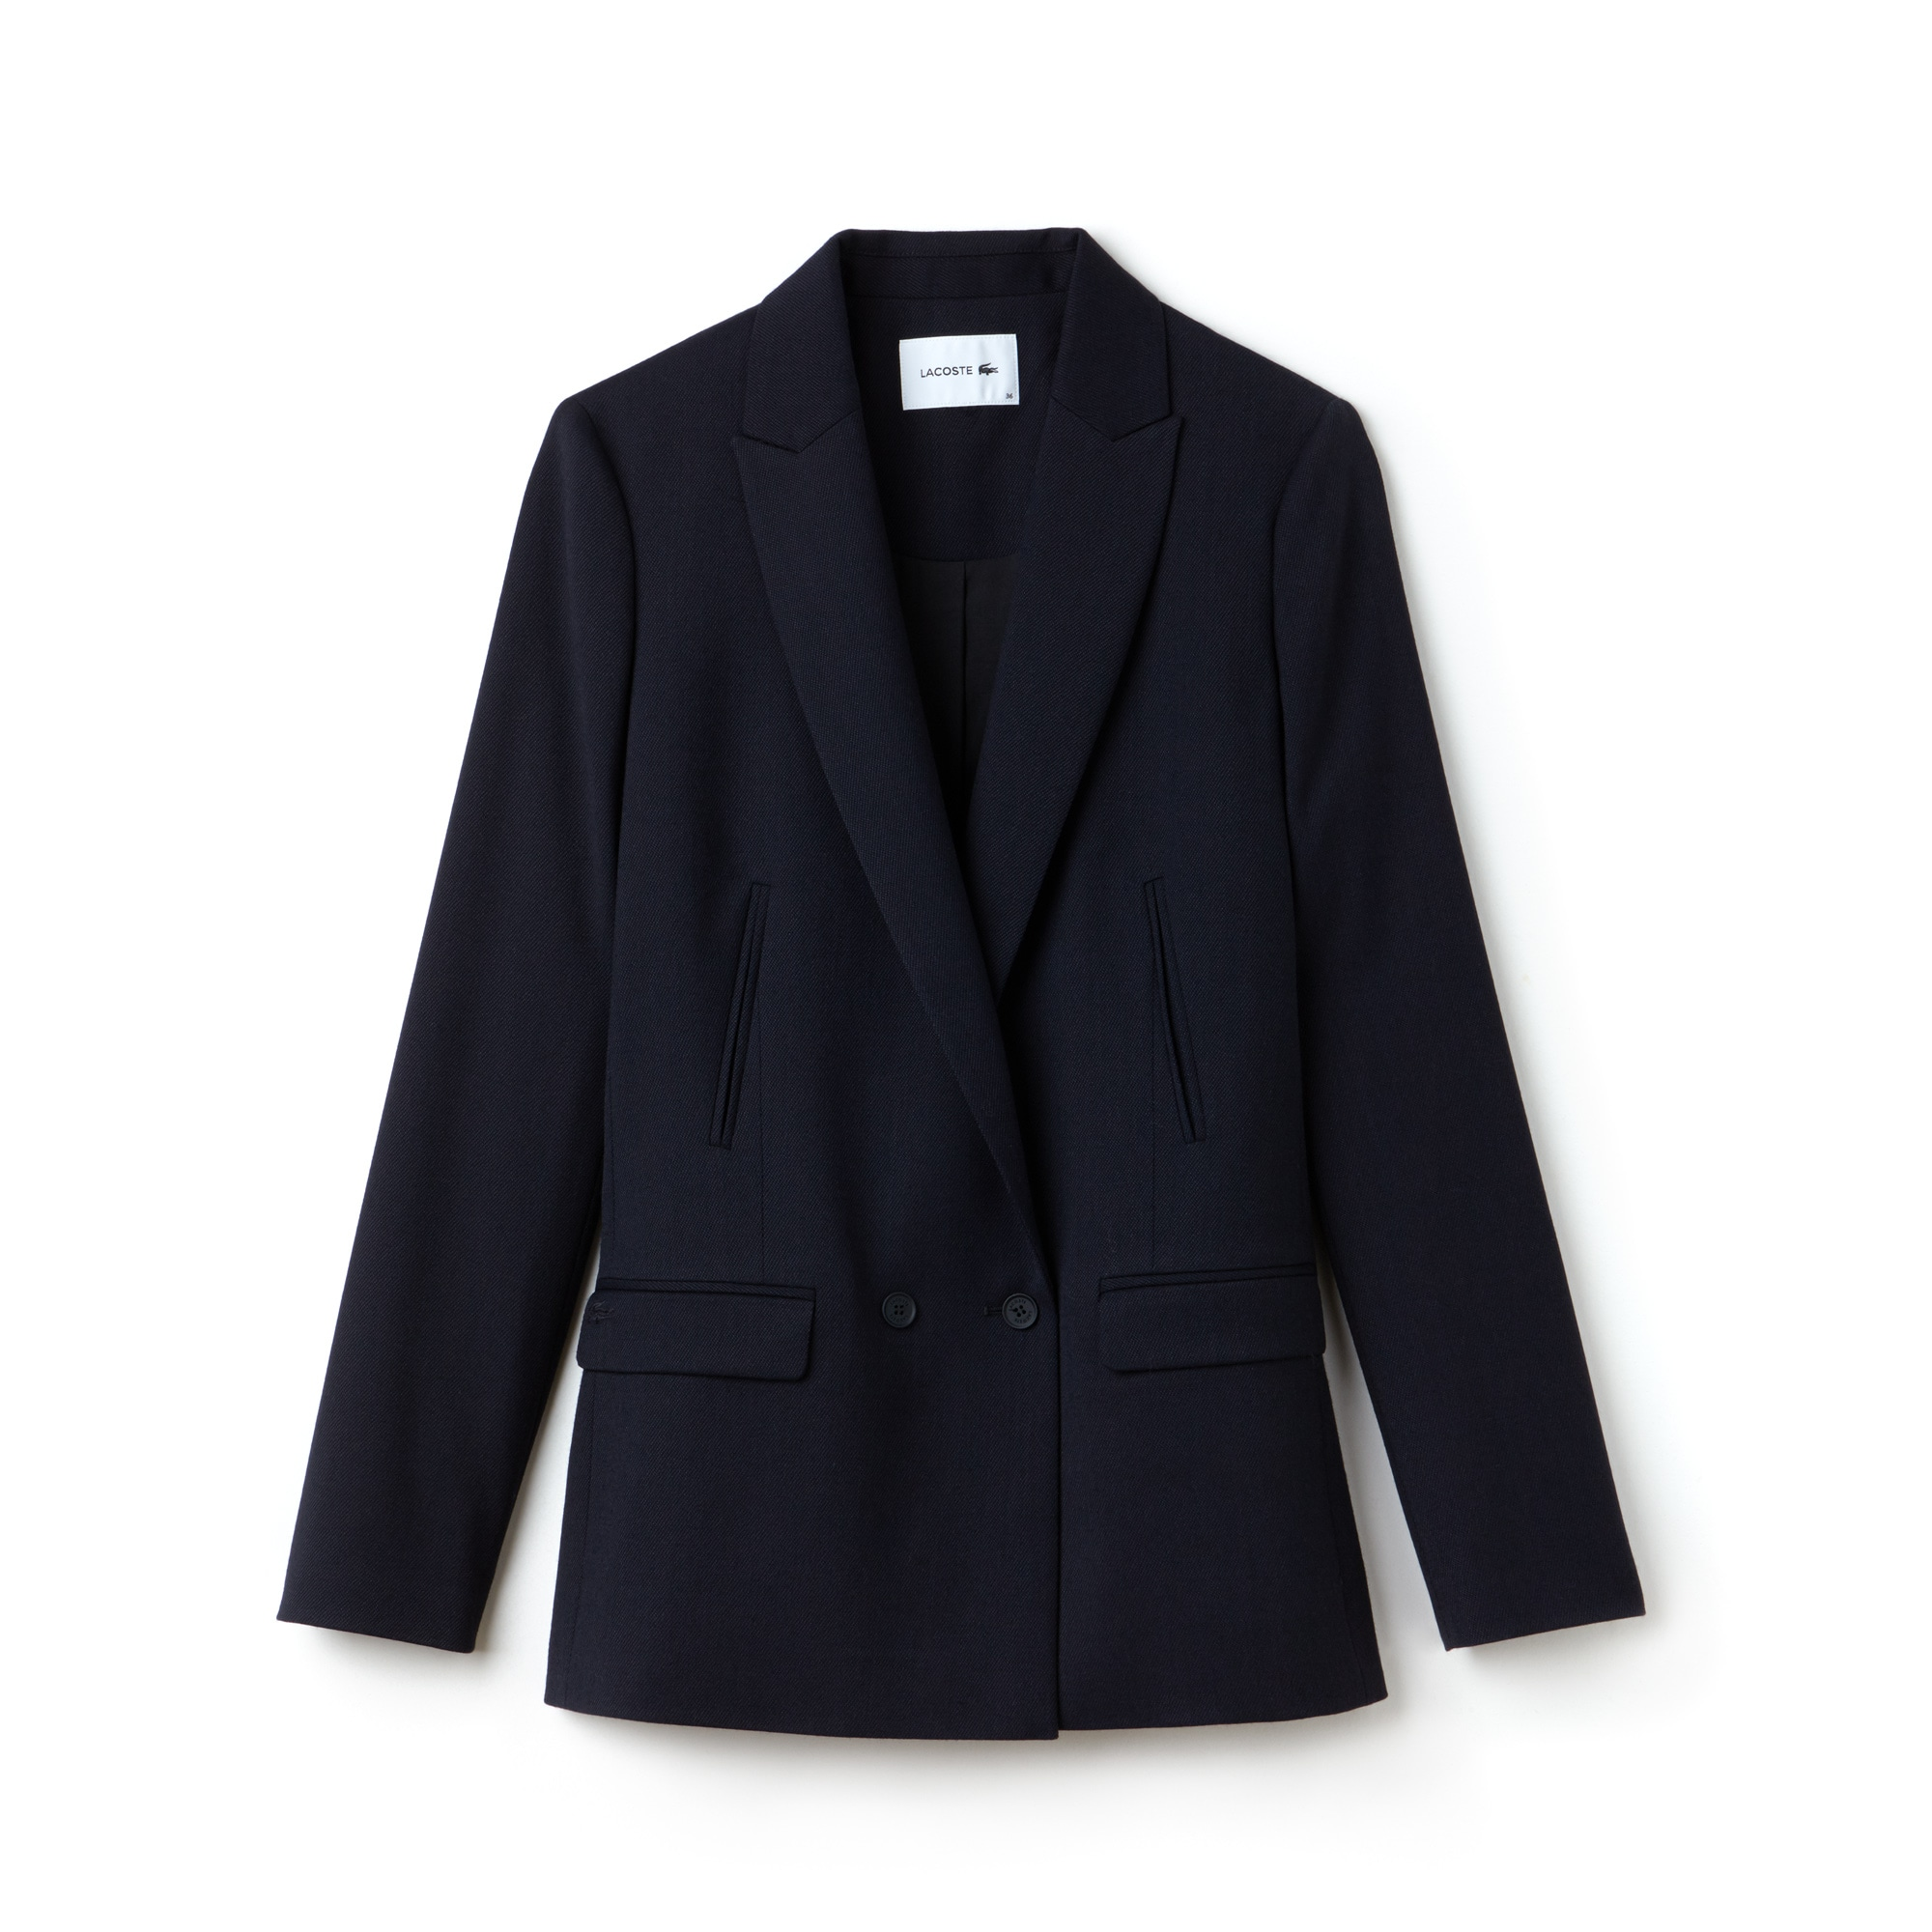 Women's Straight Cut Buttoned Wool Piqué Jacket